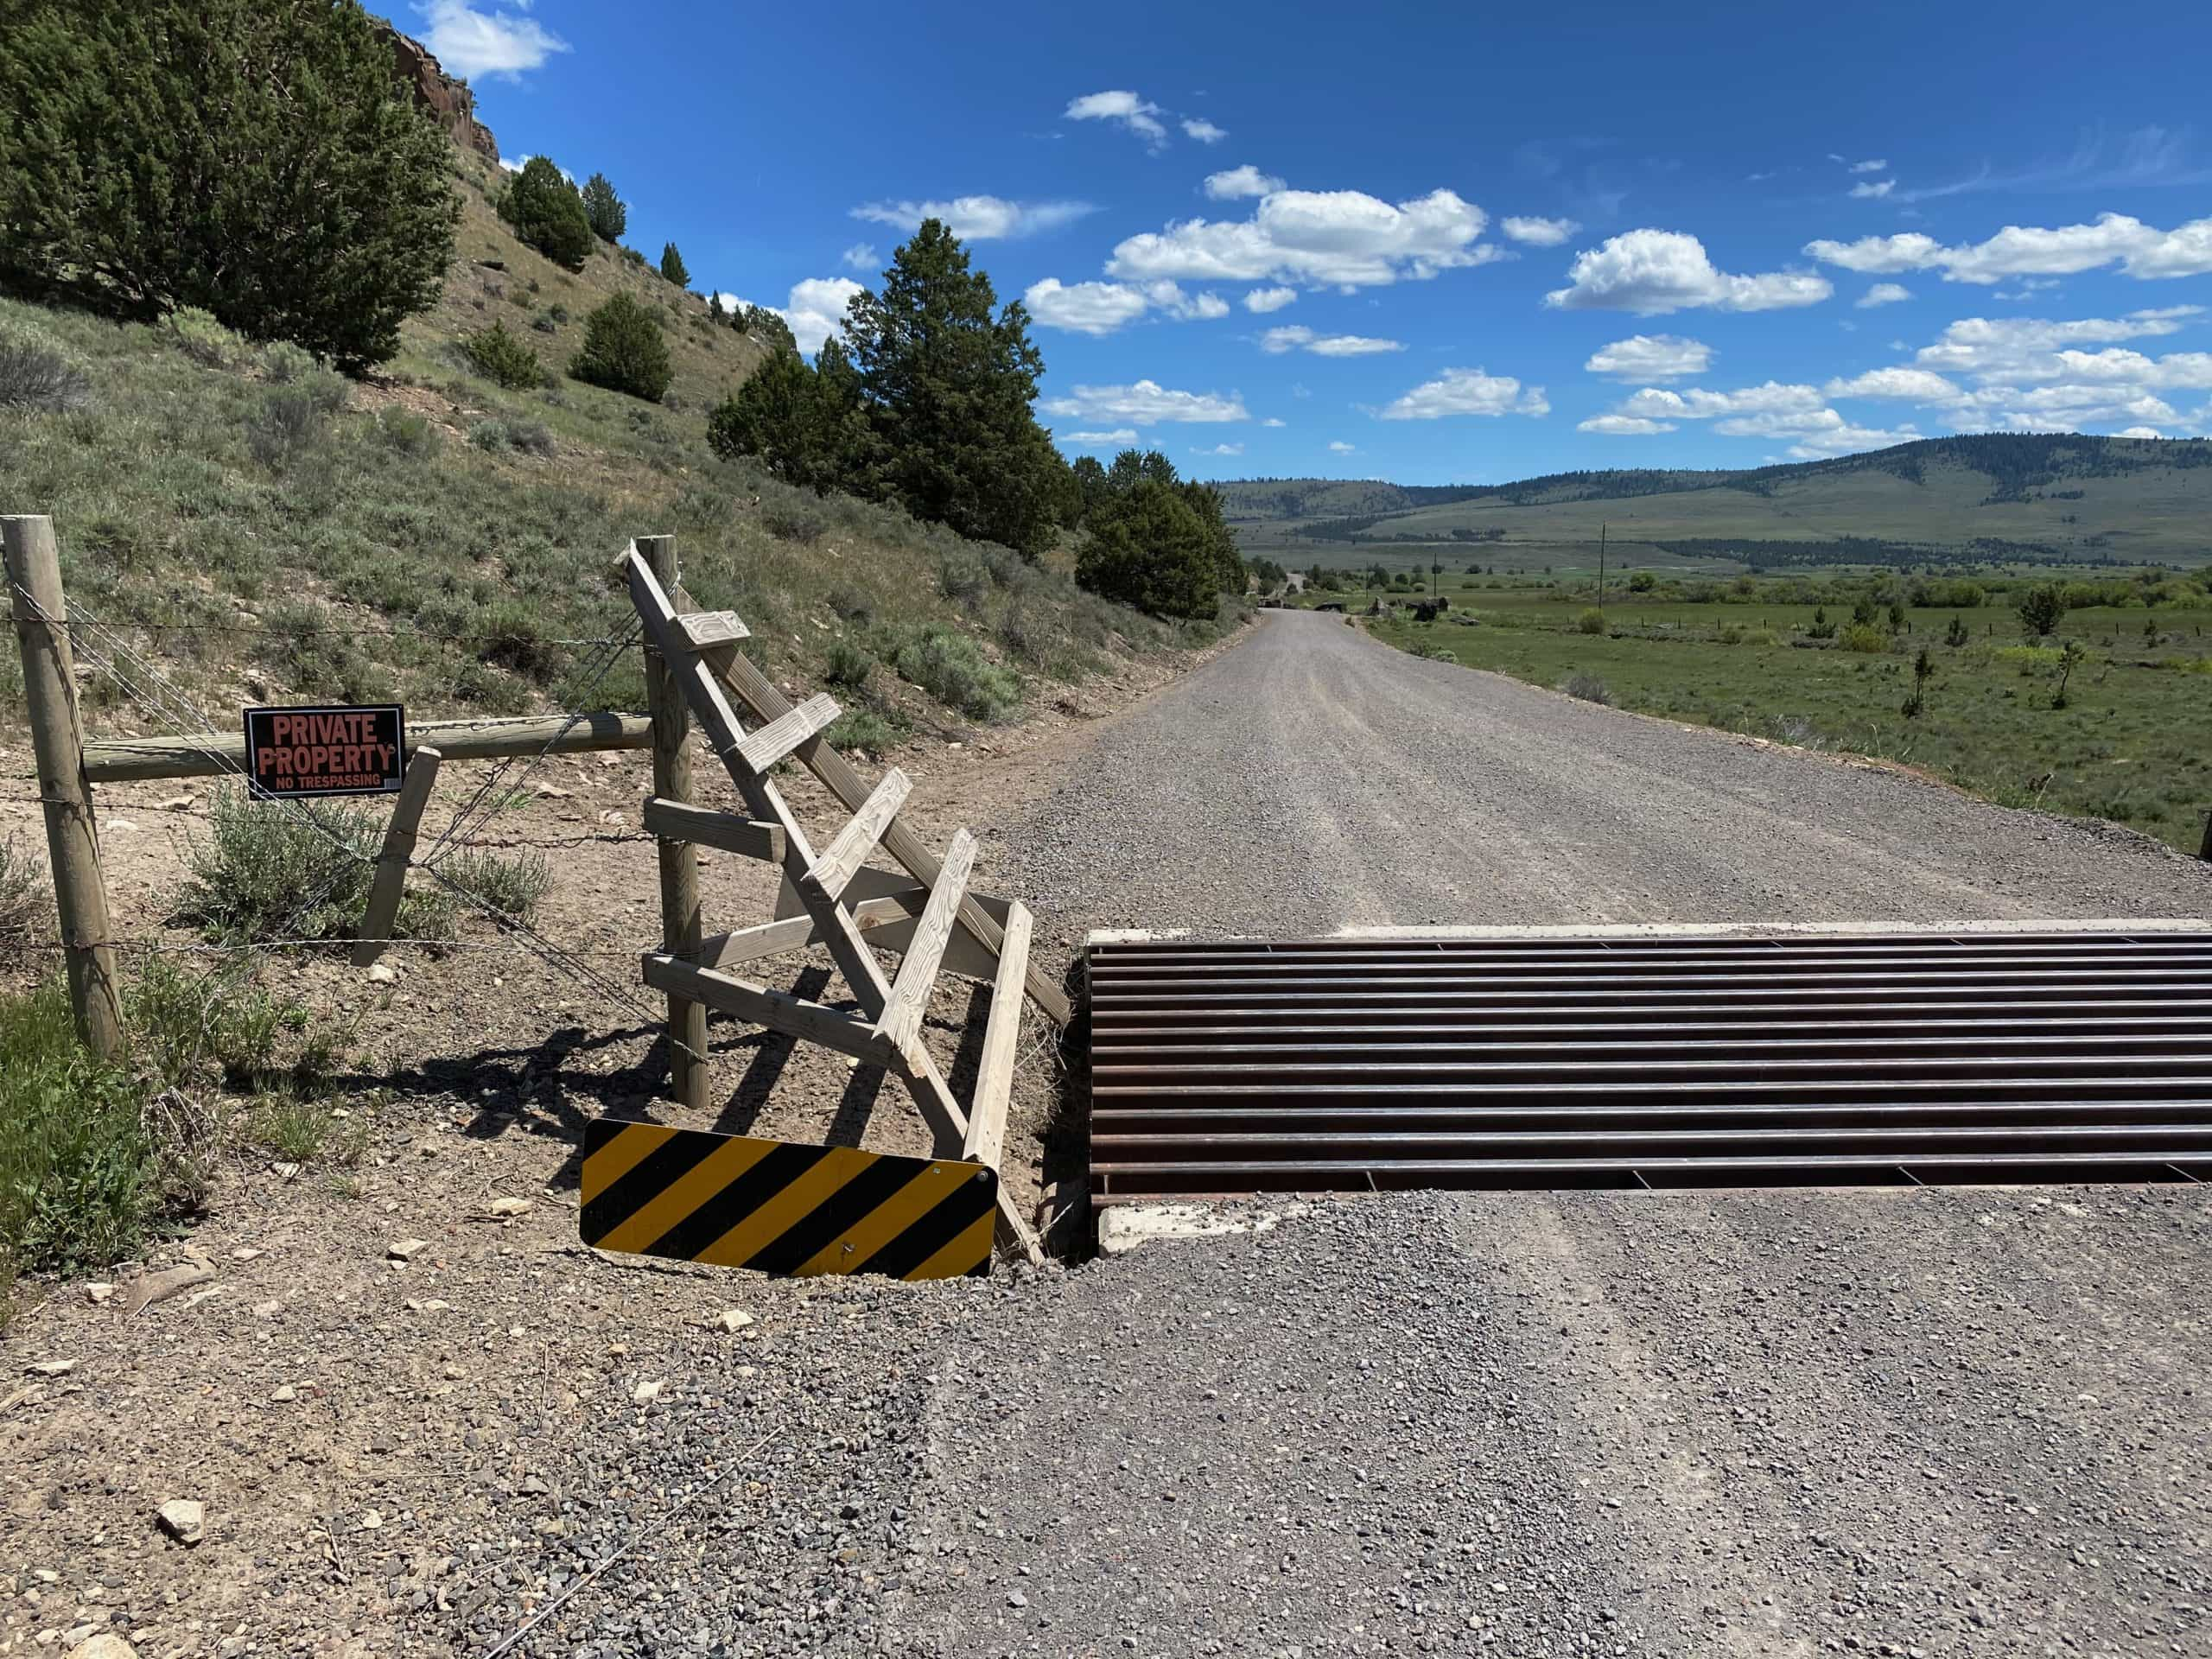 Cattle guard with No Tresspassing sign in Central, Oregon.